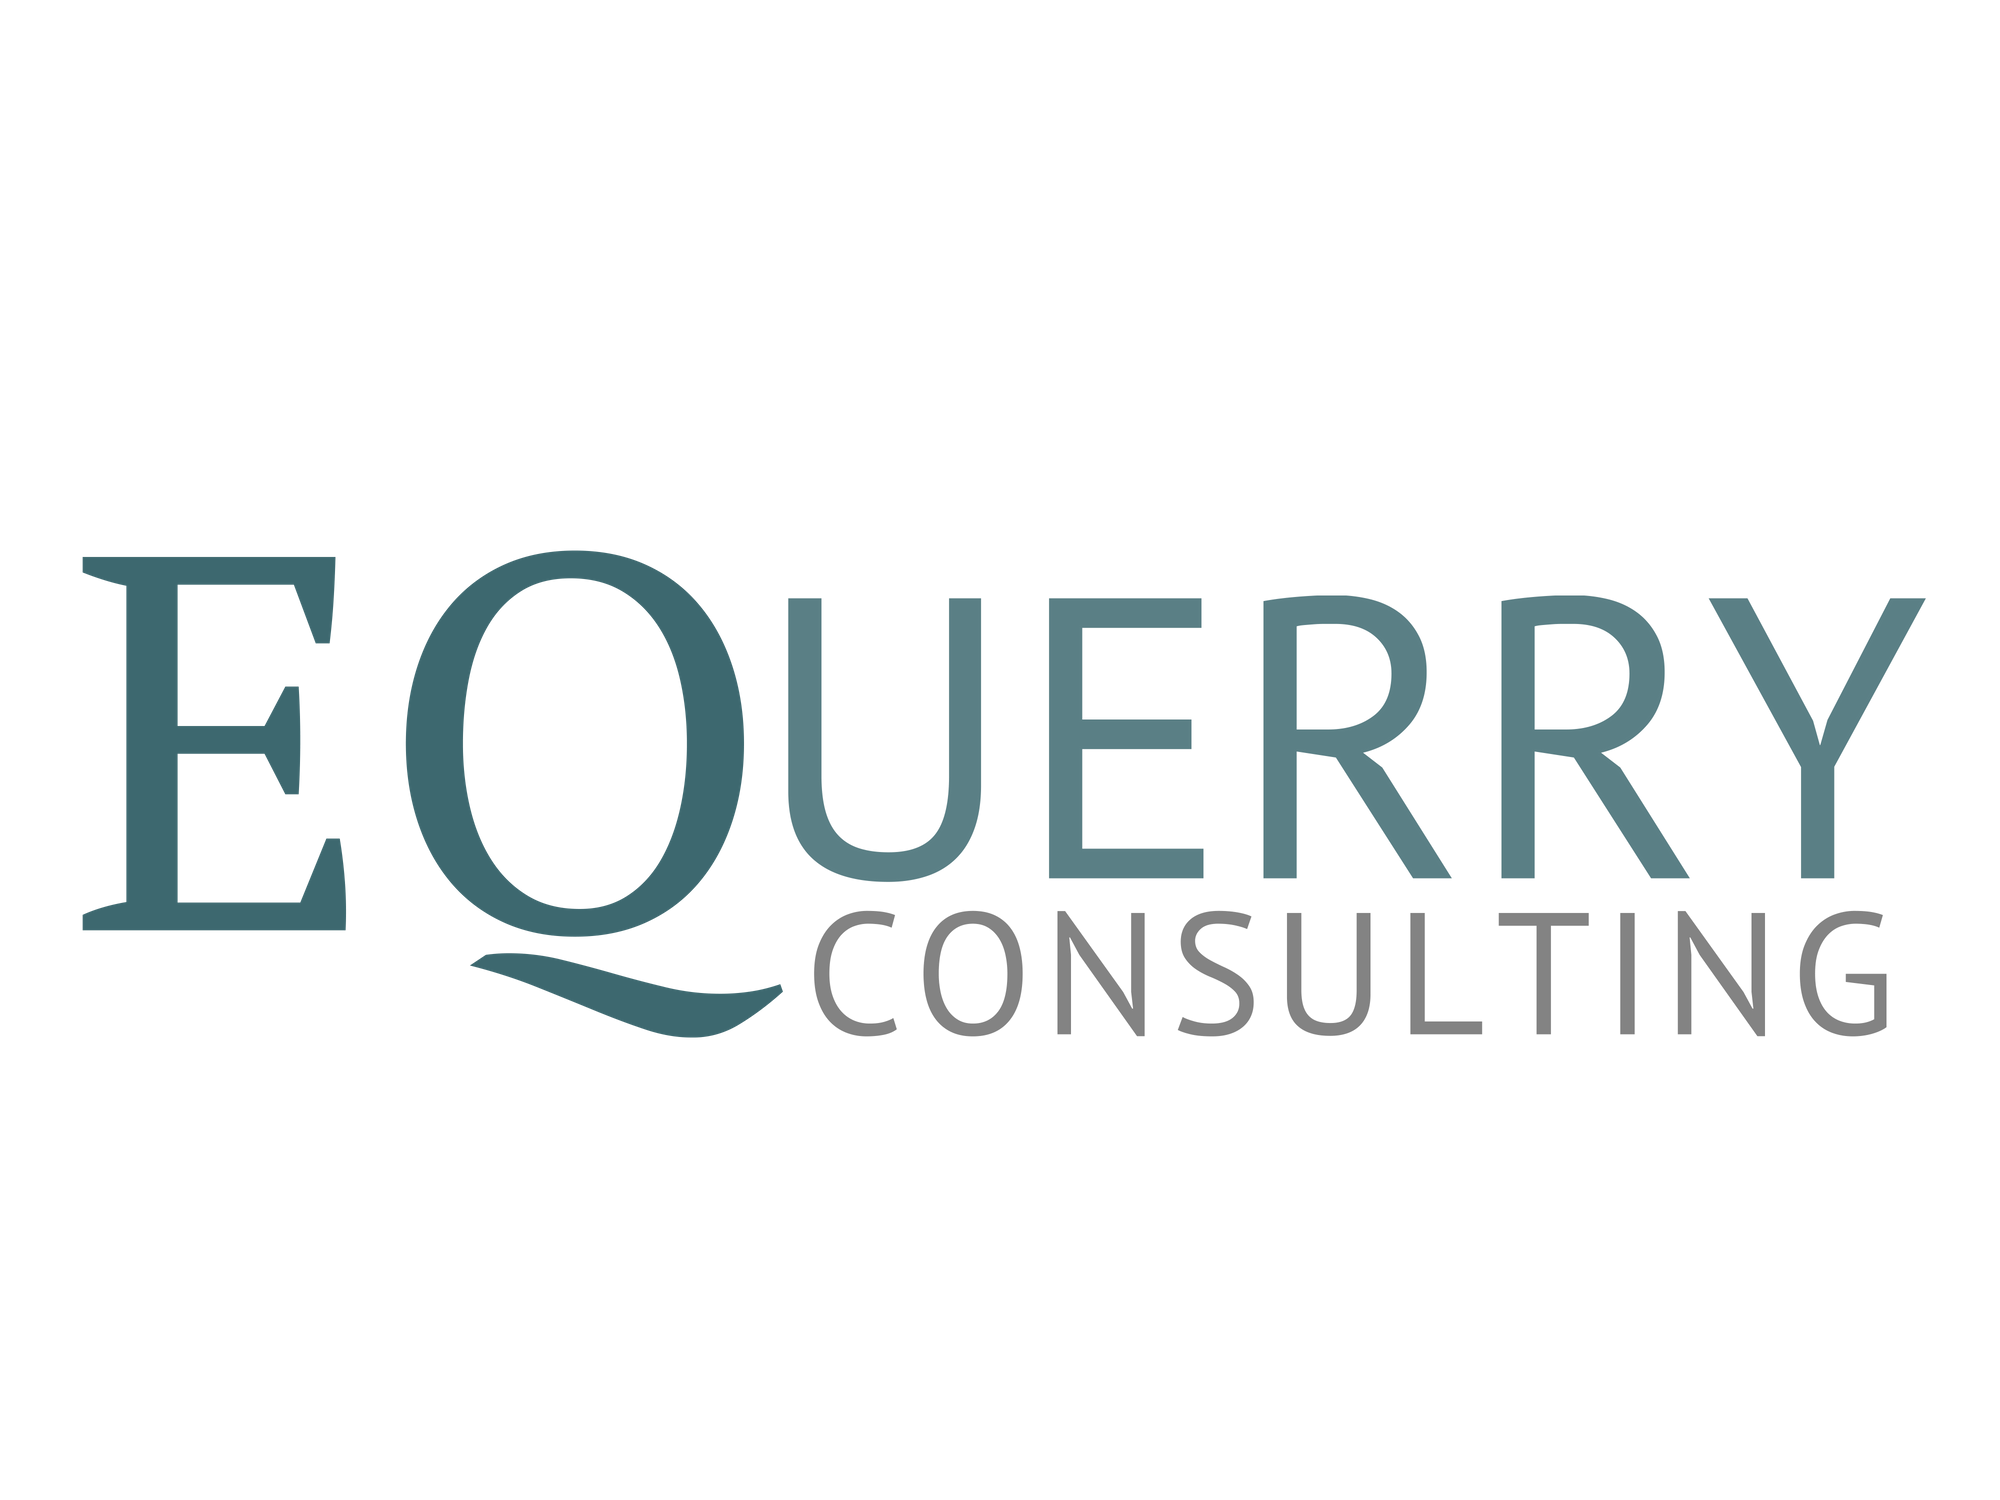 Banner Image EQuerry -4.png